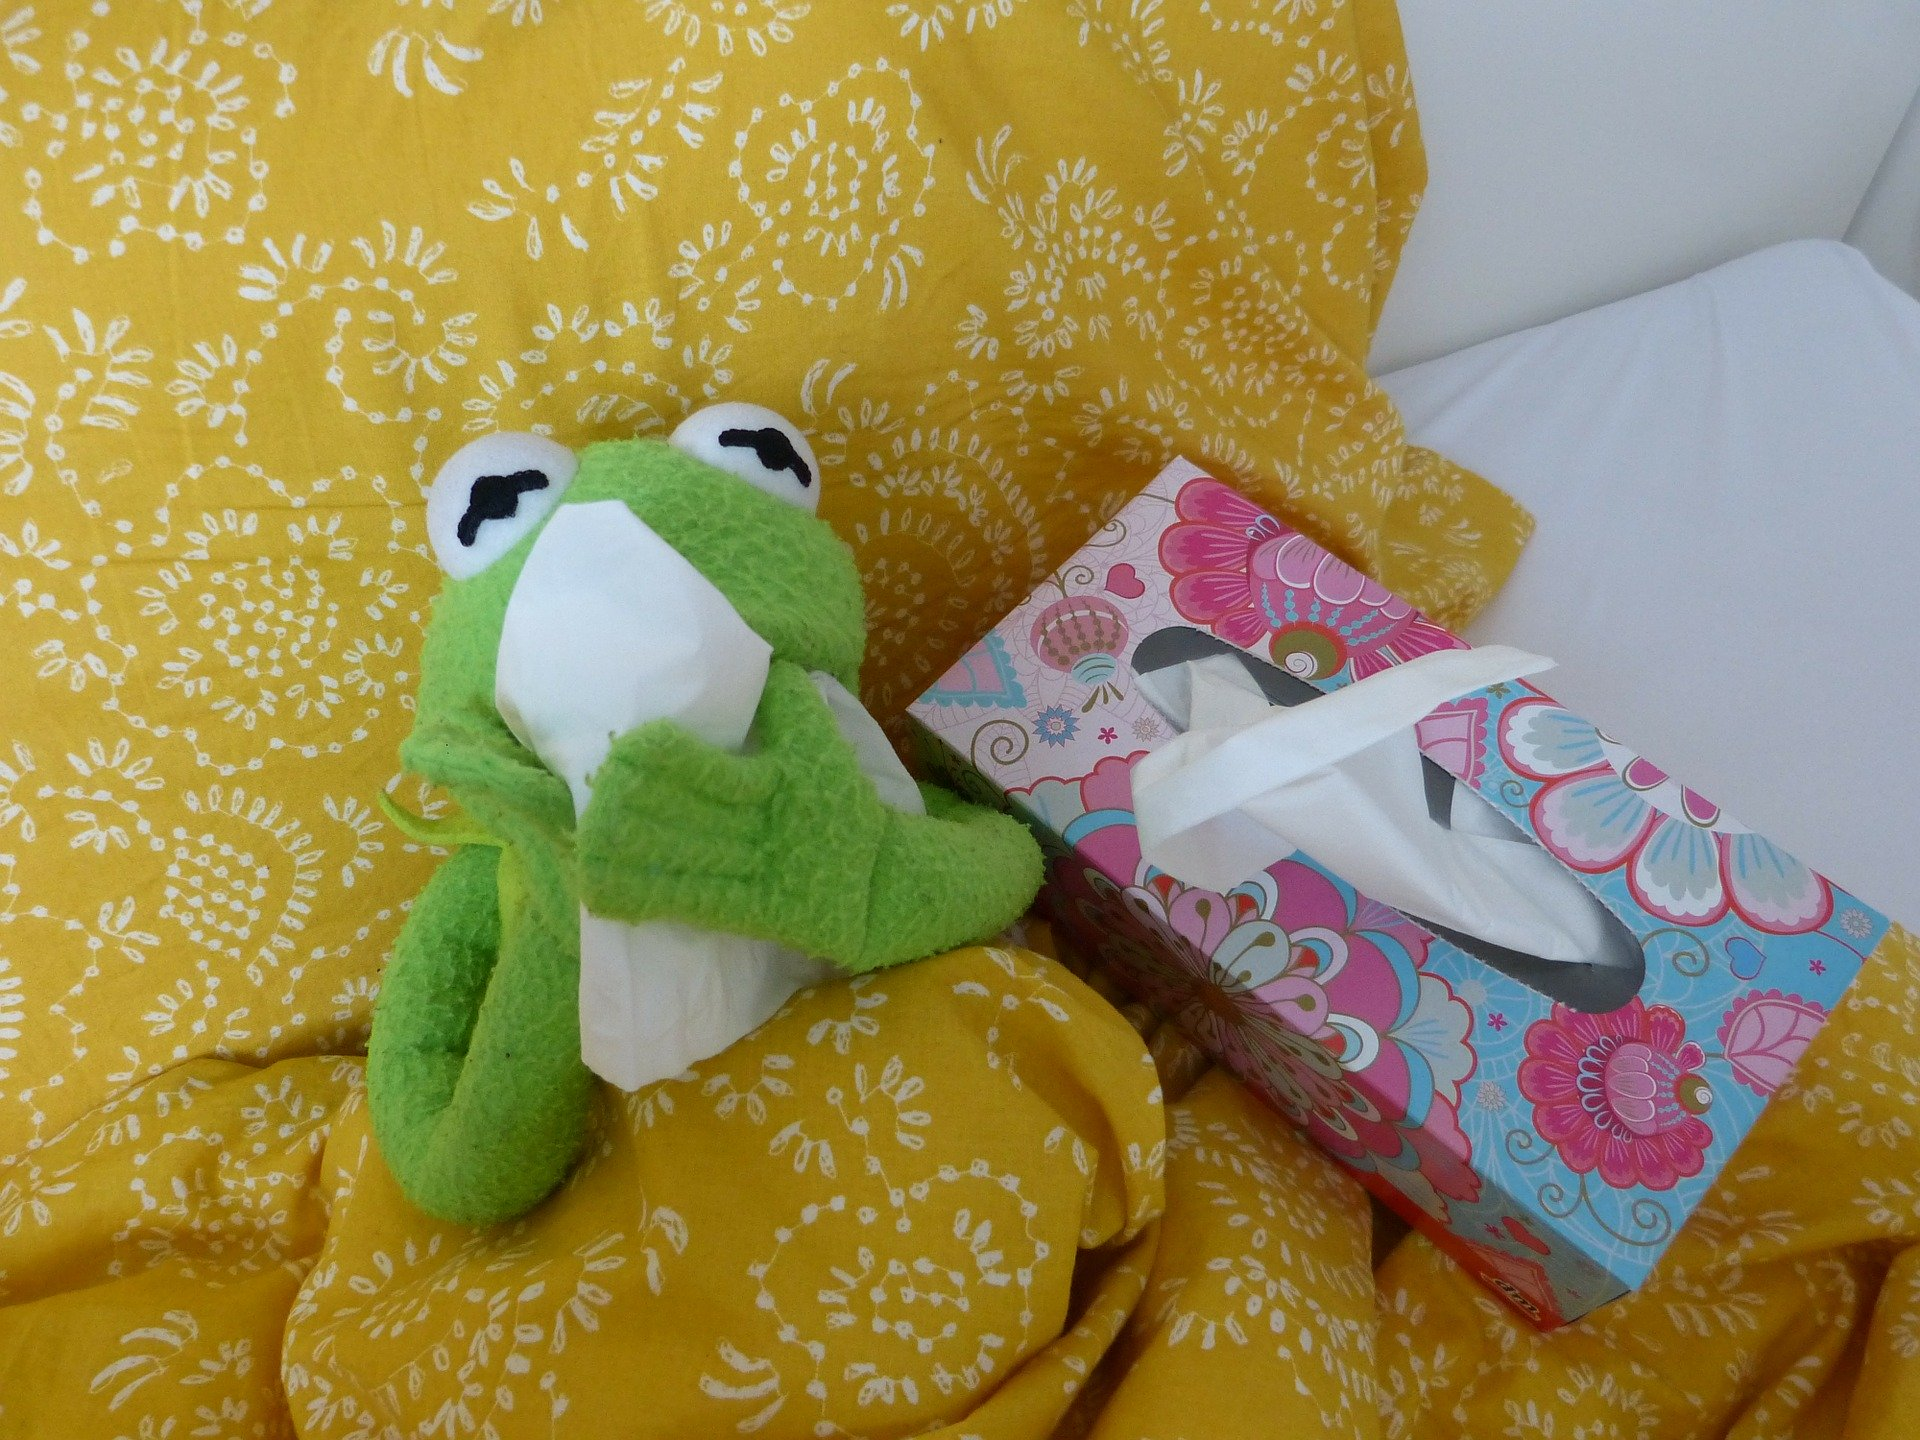 Frog doll Kermit with tissues